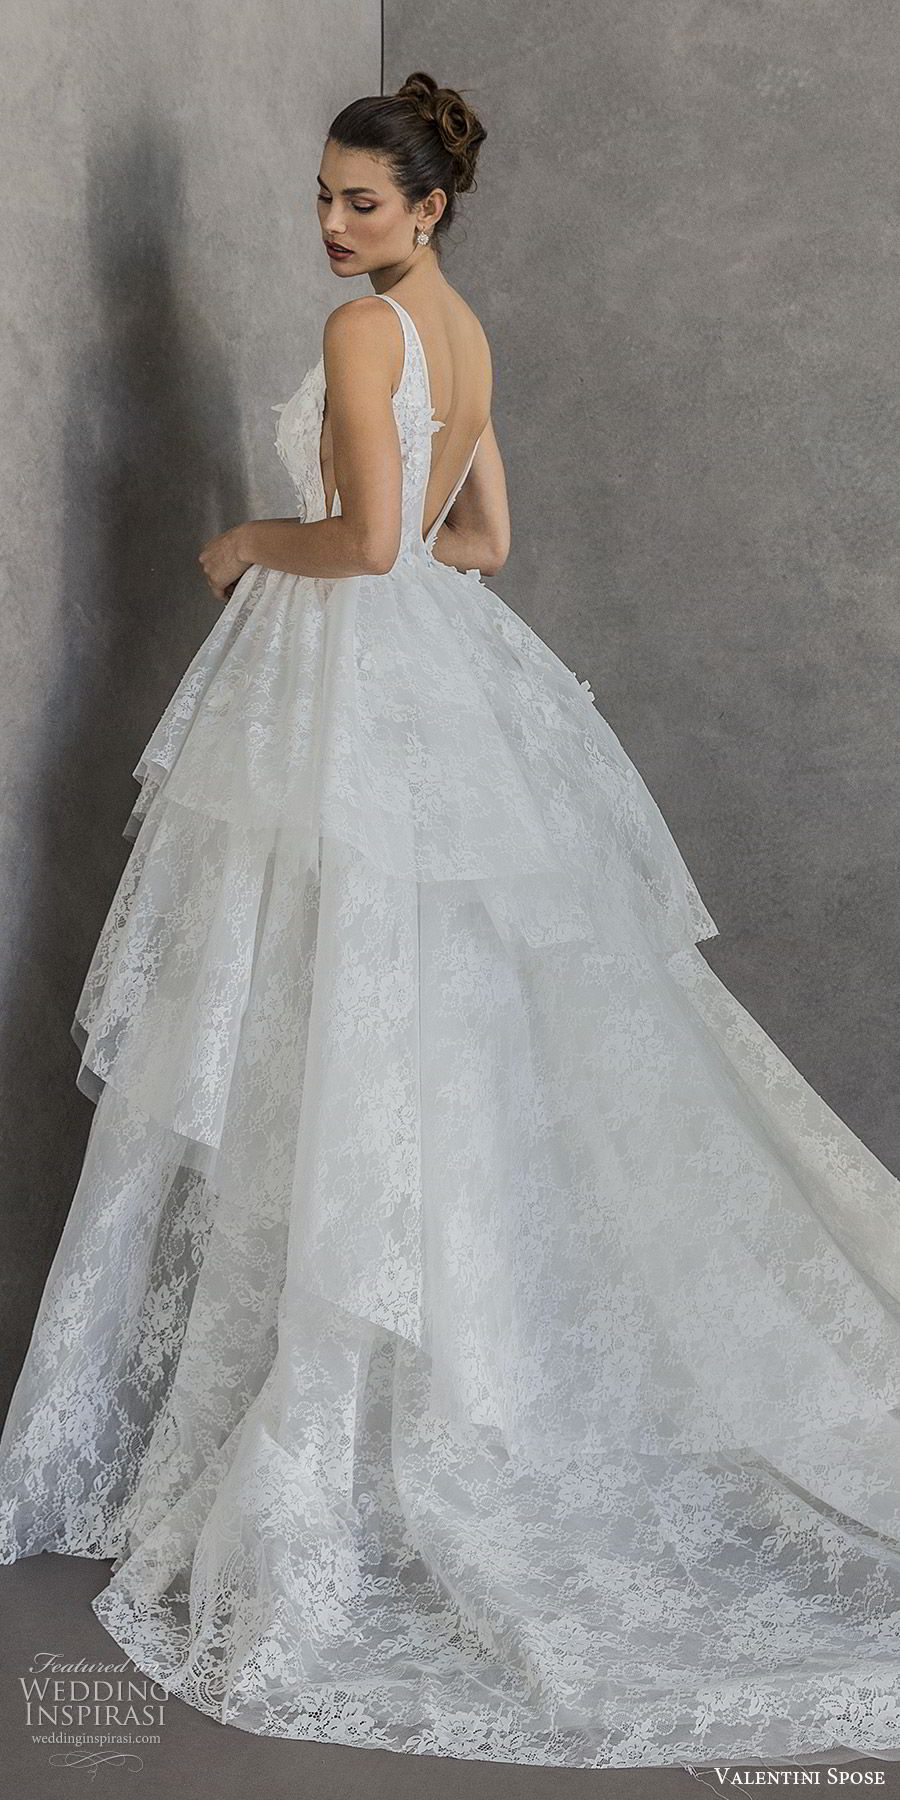 valentini spose spring 2020 bridal sleeveless deep v neckline embellished bodice lace a line ball gown wedding dress (8) tiered skirt romantic princess cathedral train bv